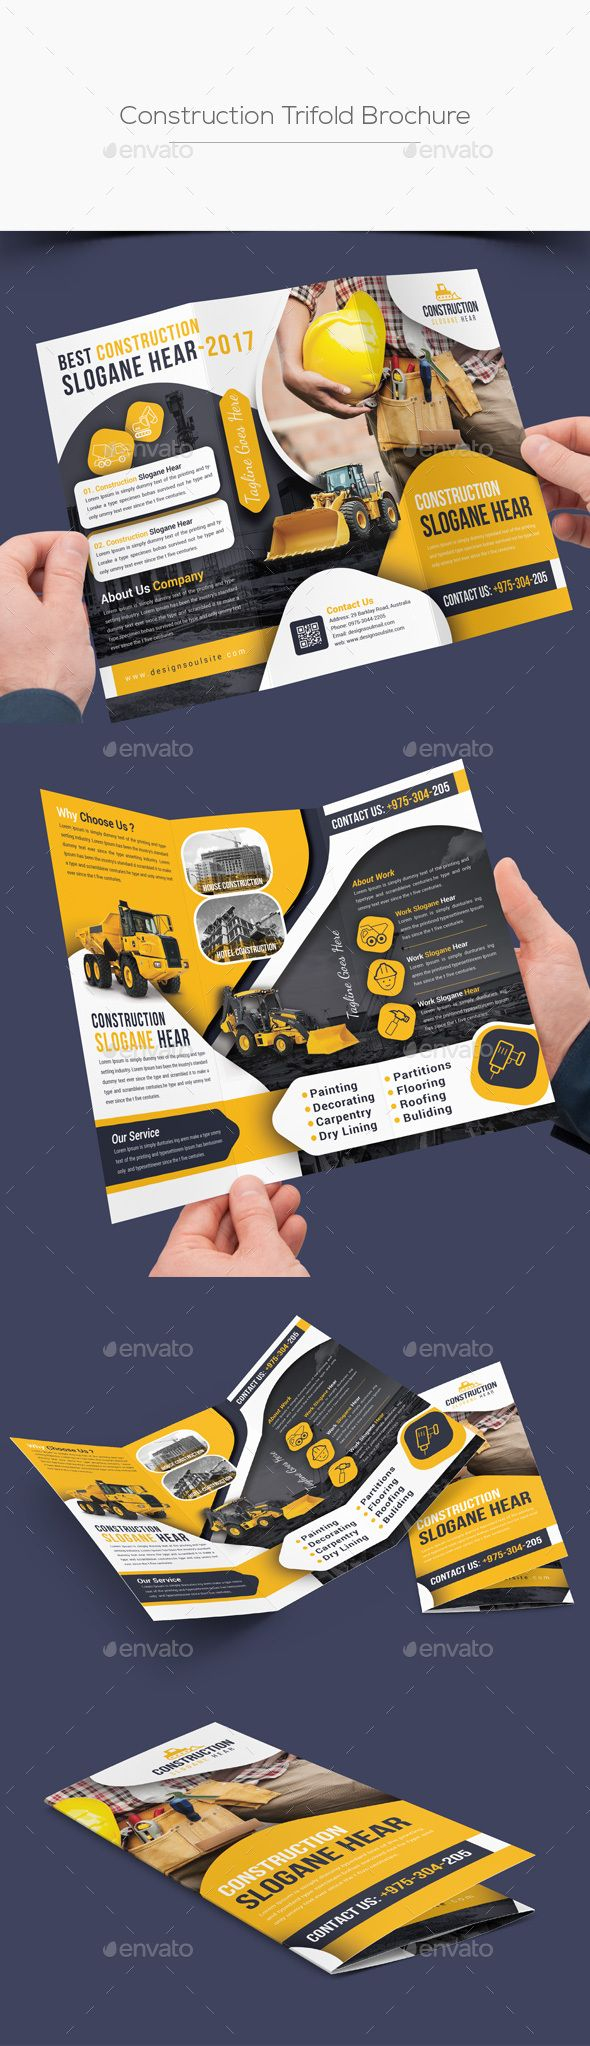 Construction Trifold Brochure Template PSD